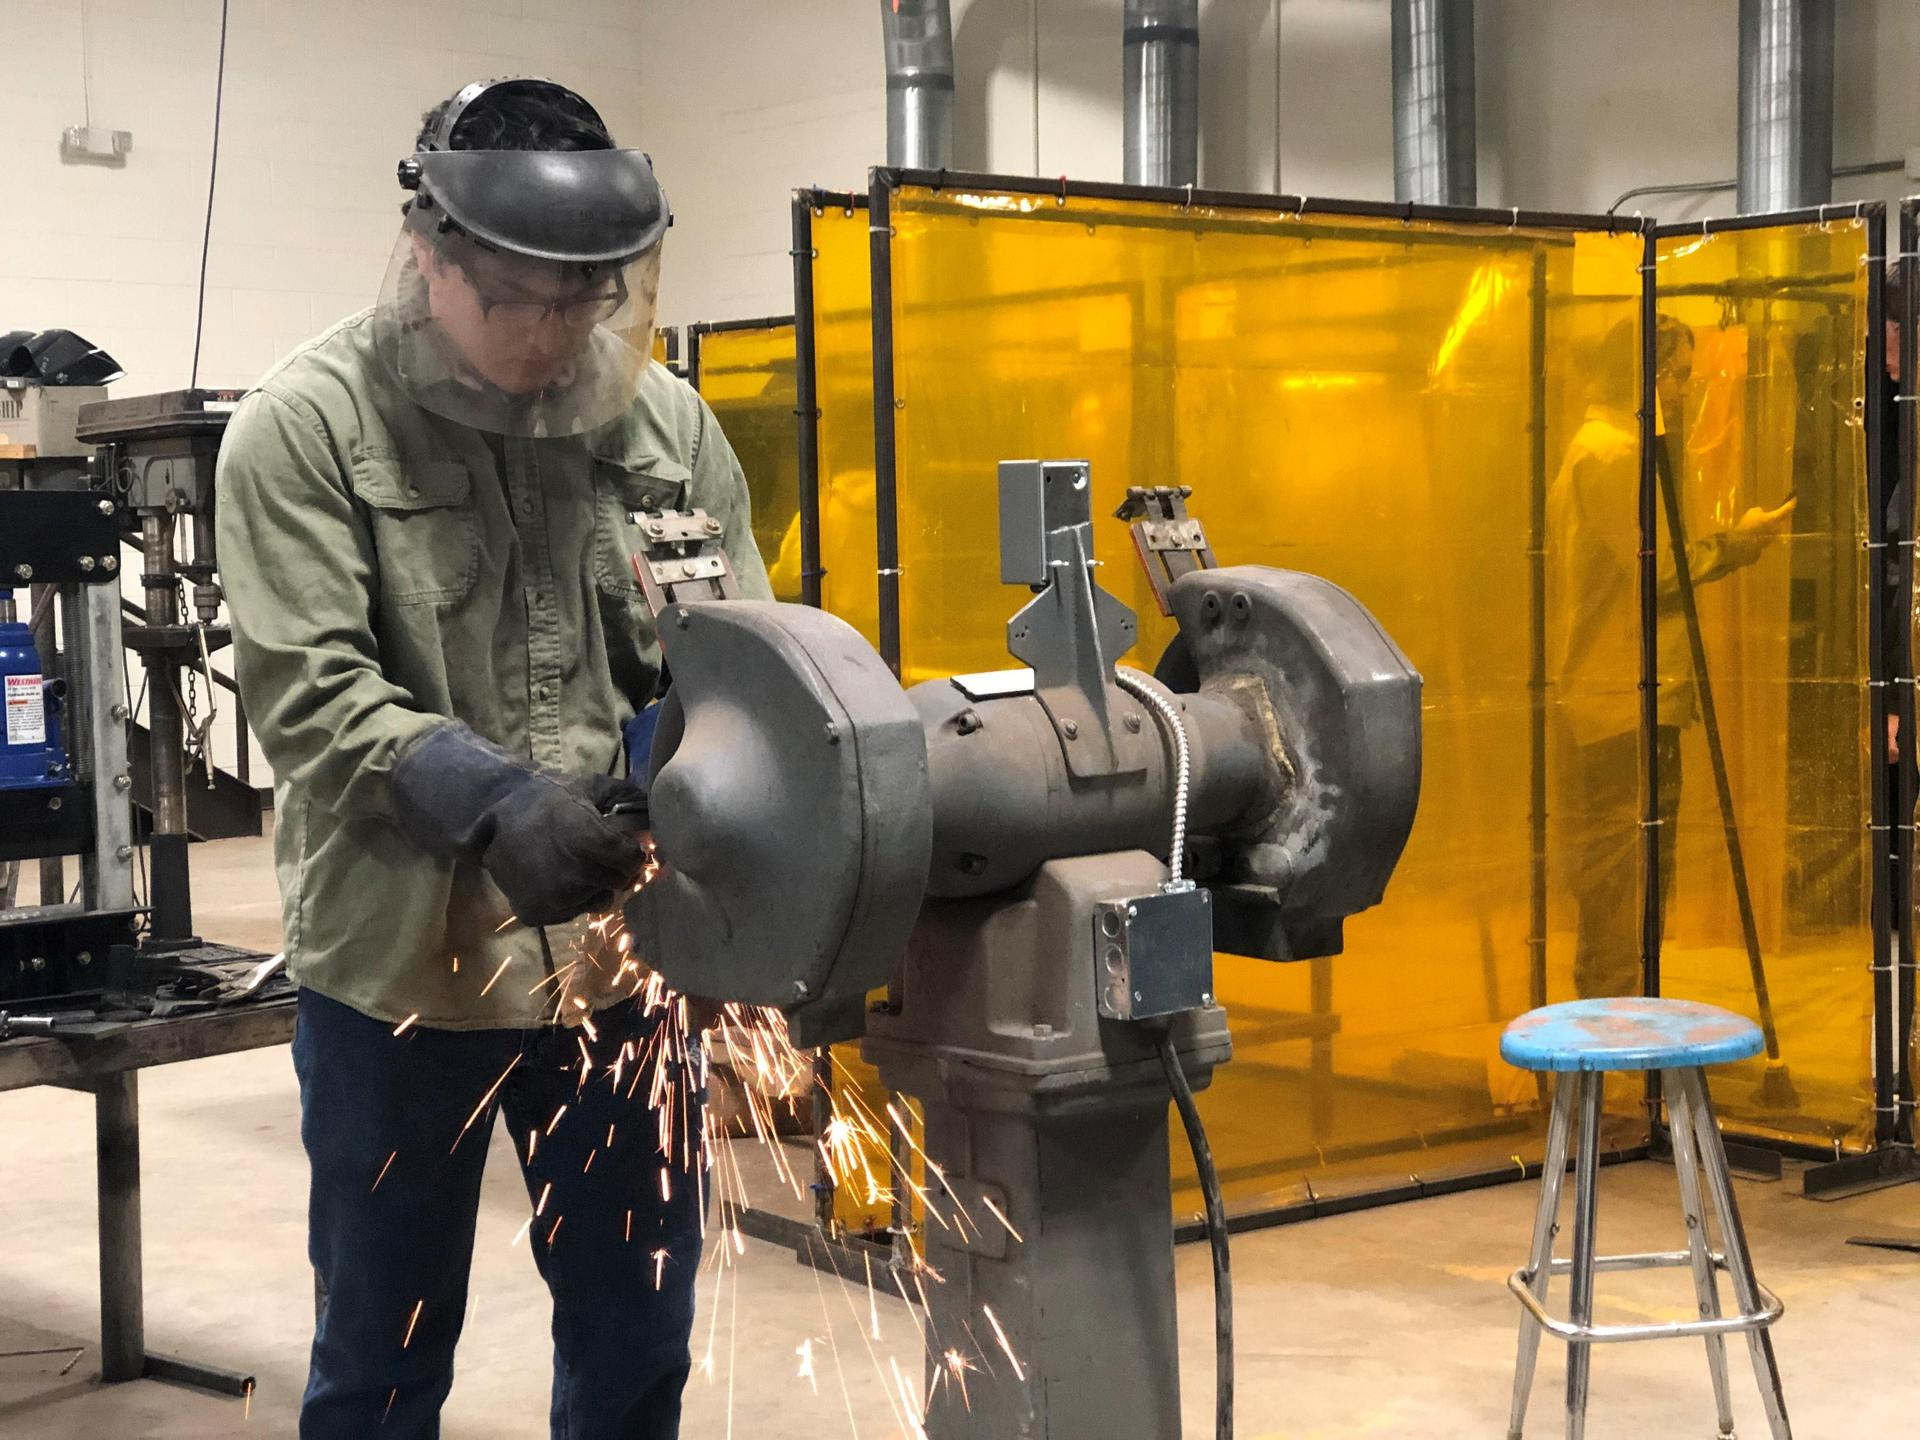 welding student at machine in classroom